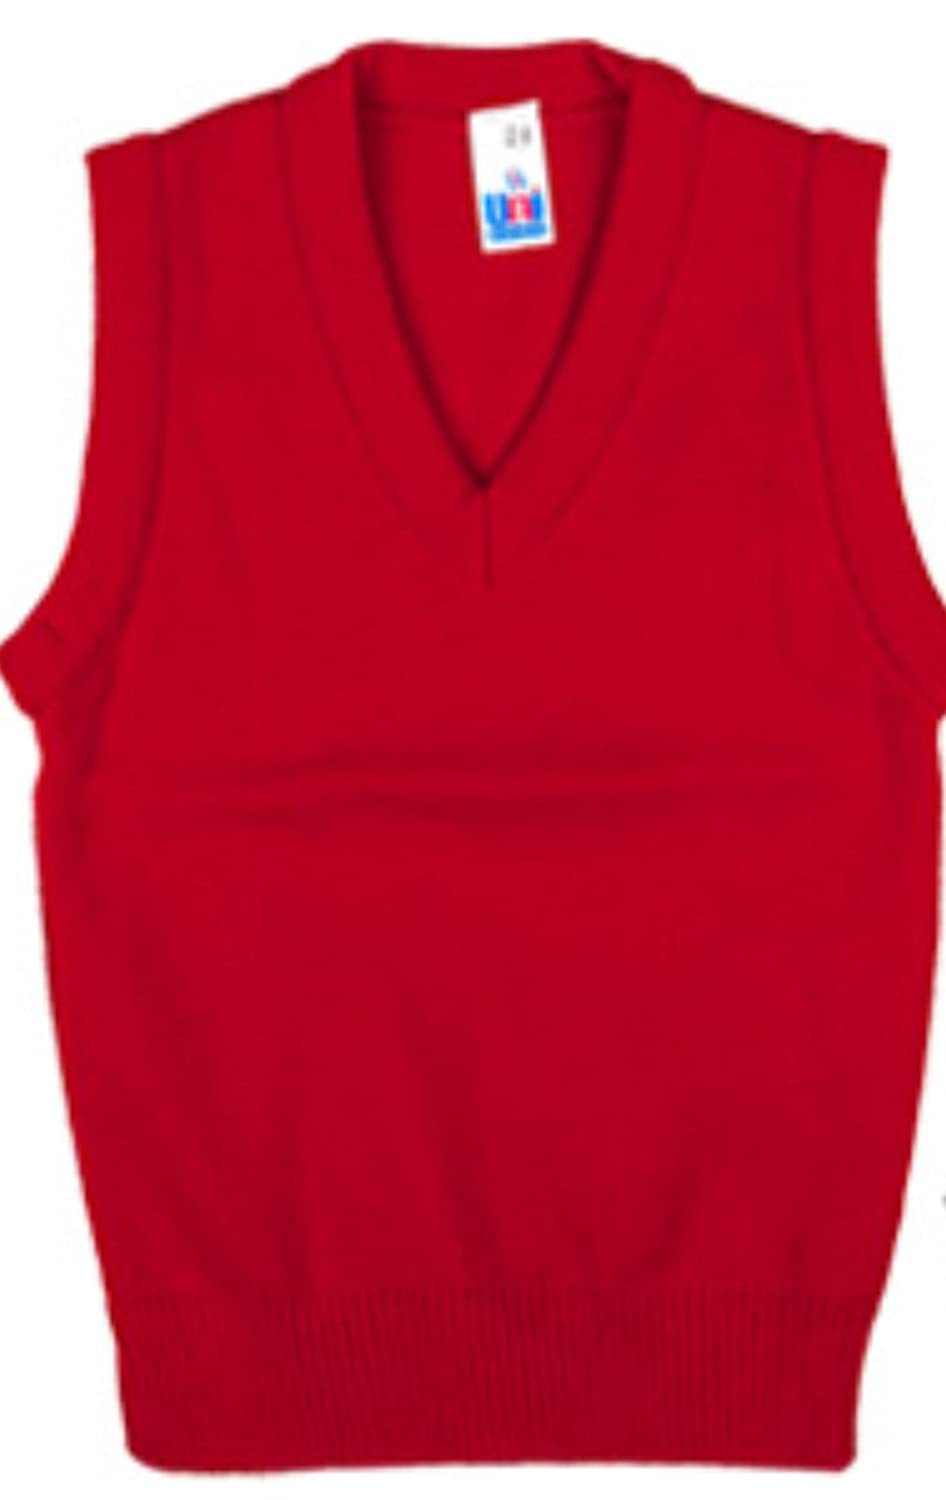 School Uniform V Neck Tank Top Sleeveless Jumper NEW Unique